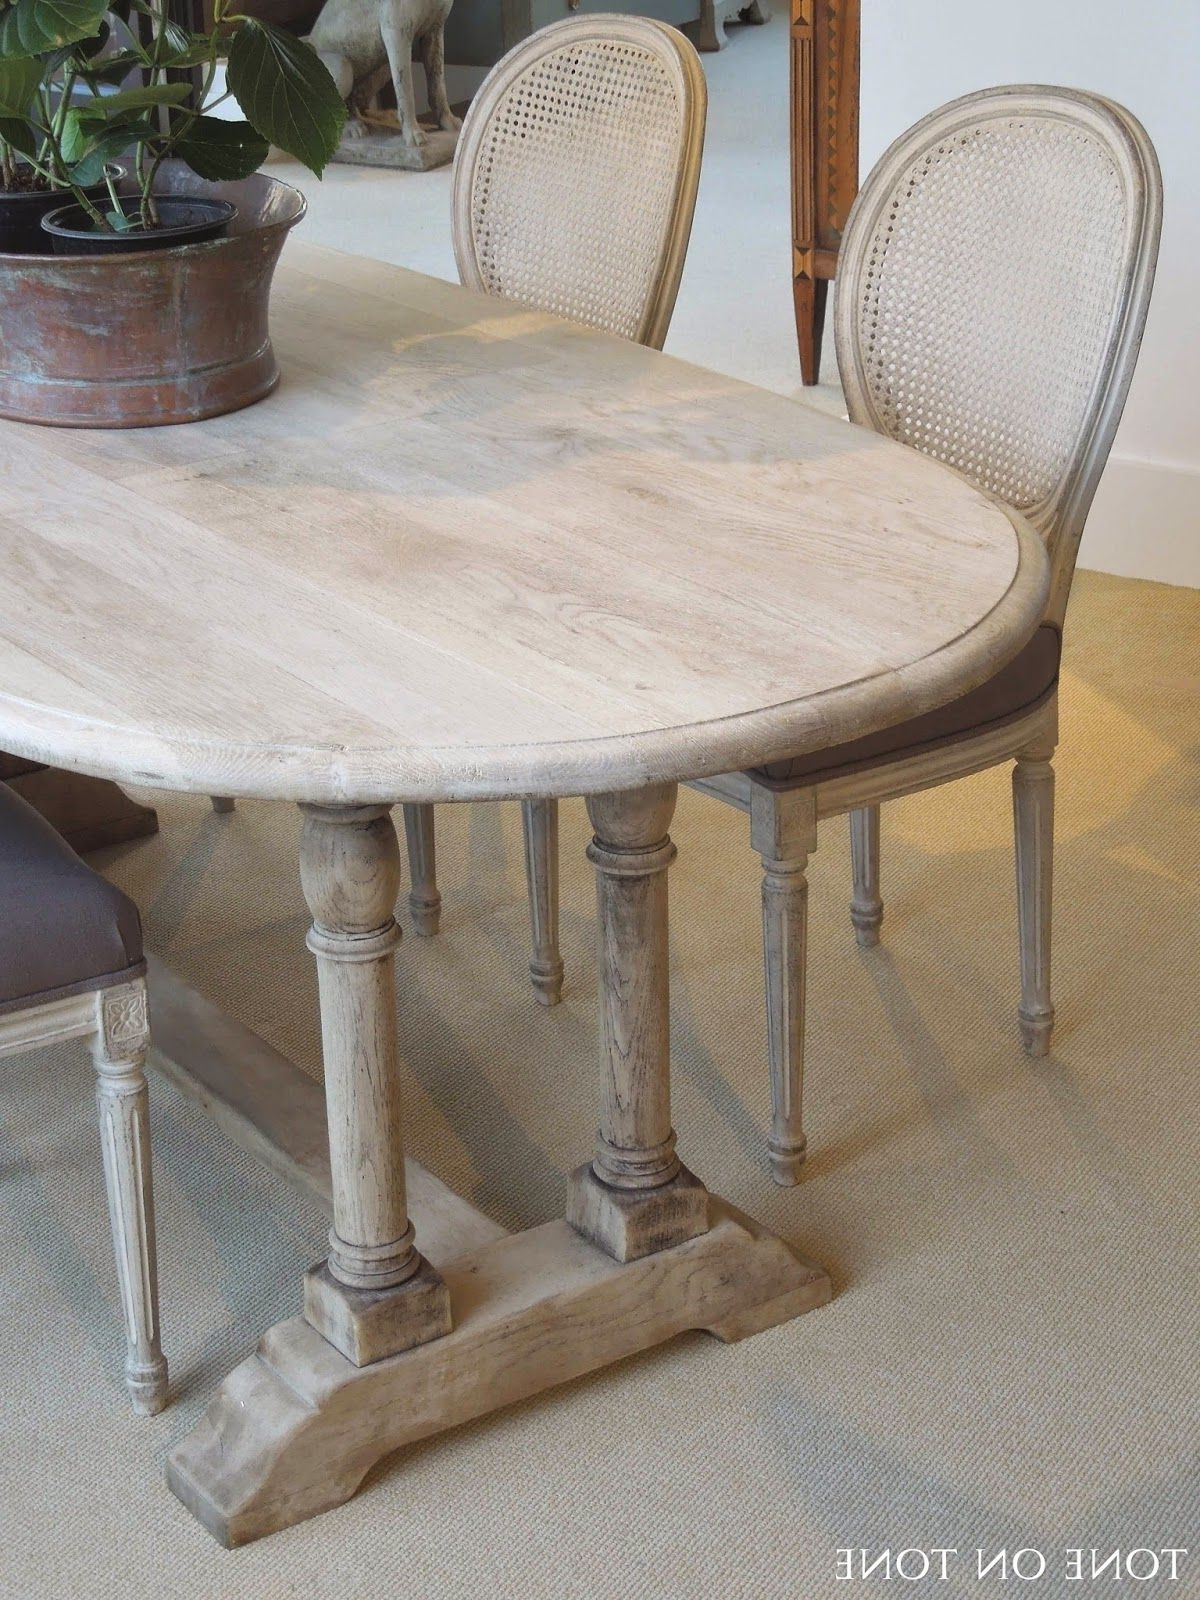 Helms Round Dining Tables Throughout Well Known Here Is A 19Th Century Belgian Bleached Oak Dining / Kitchen Table (Gallery 5 of 25)